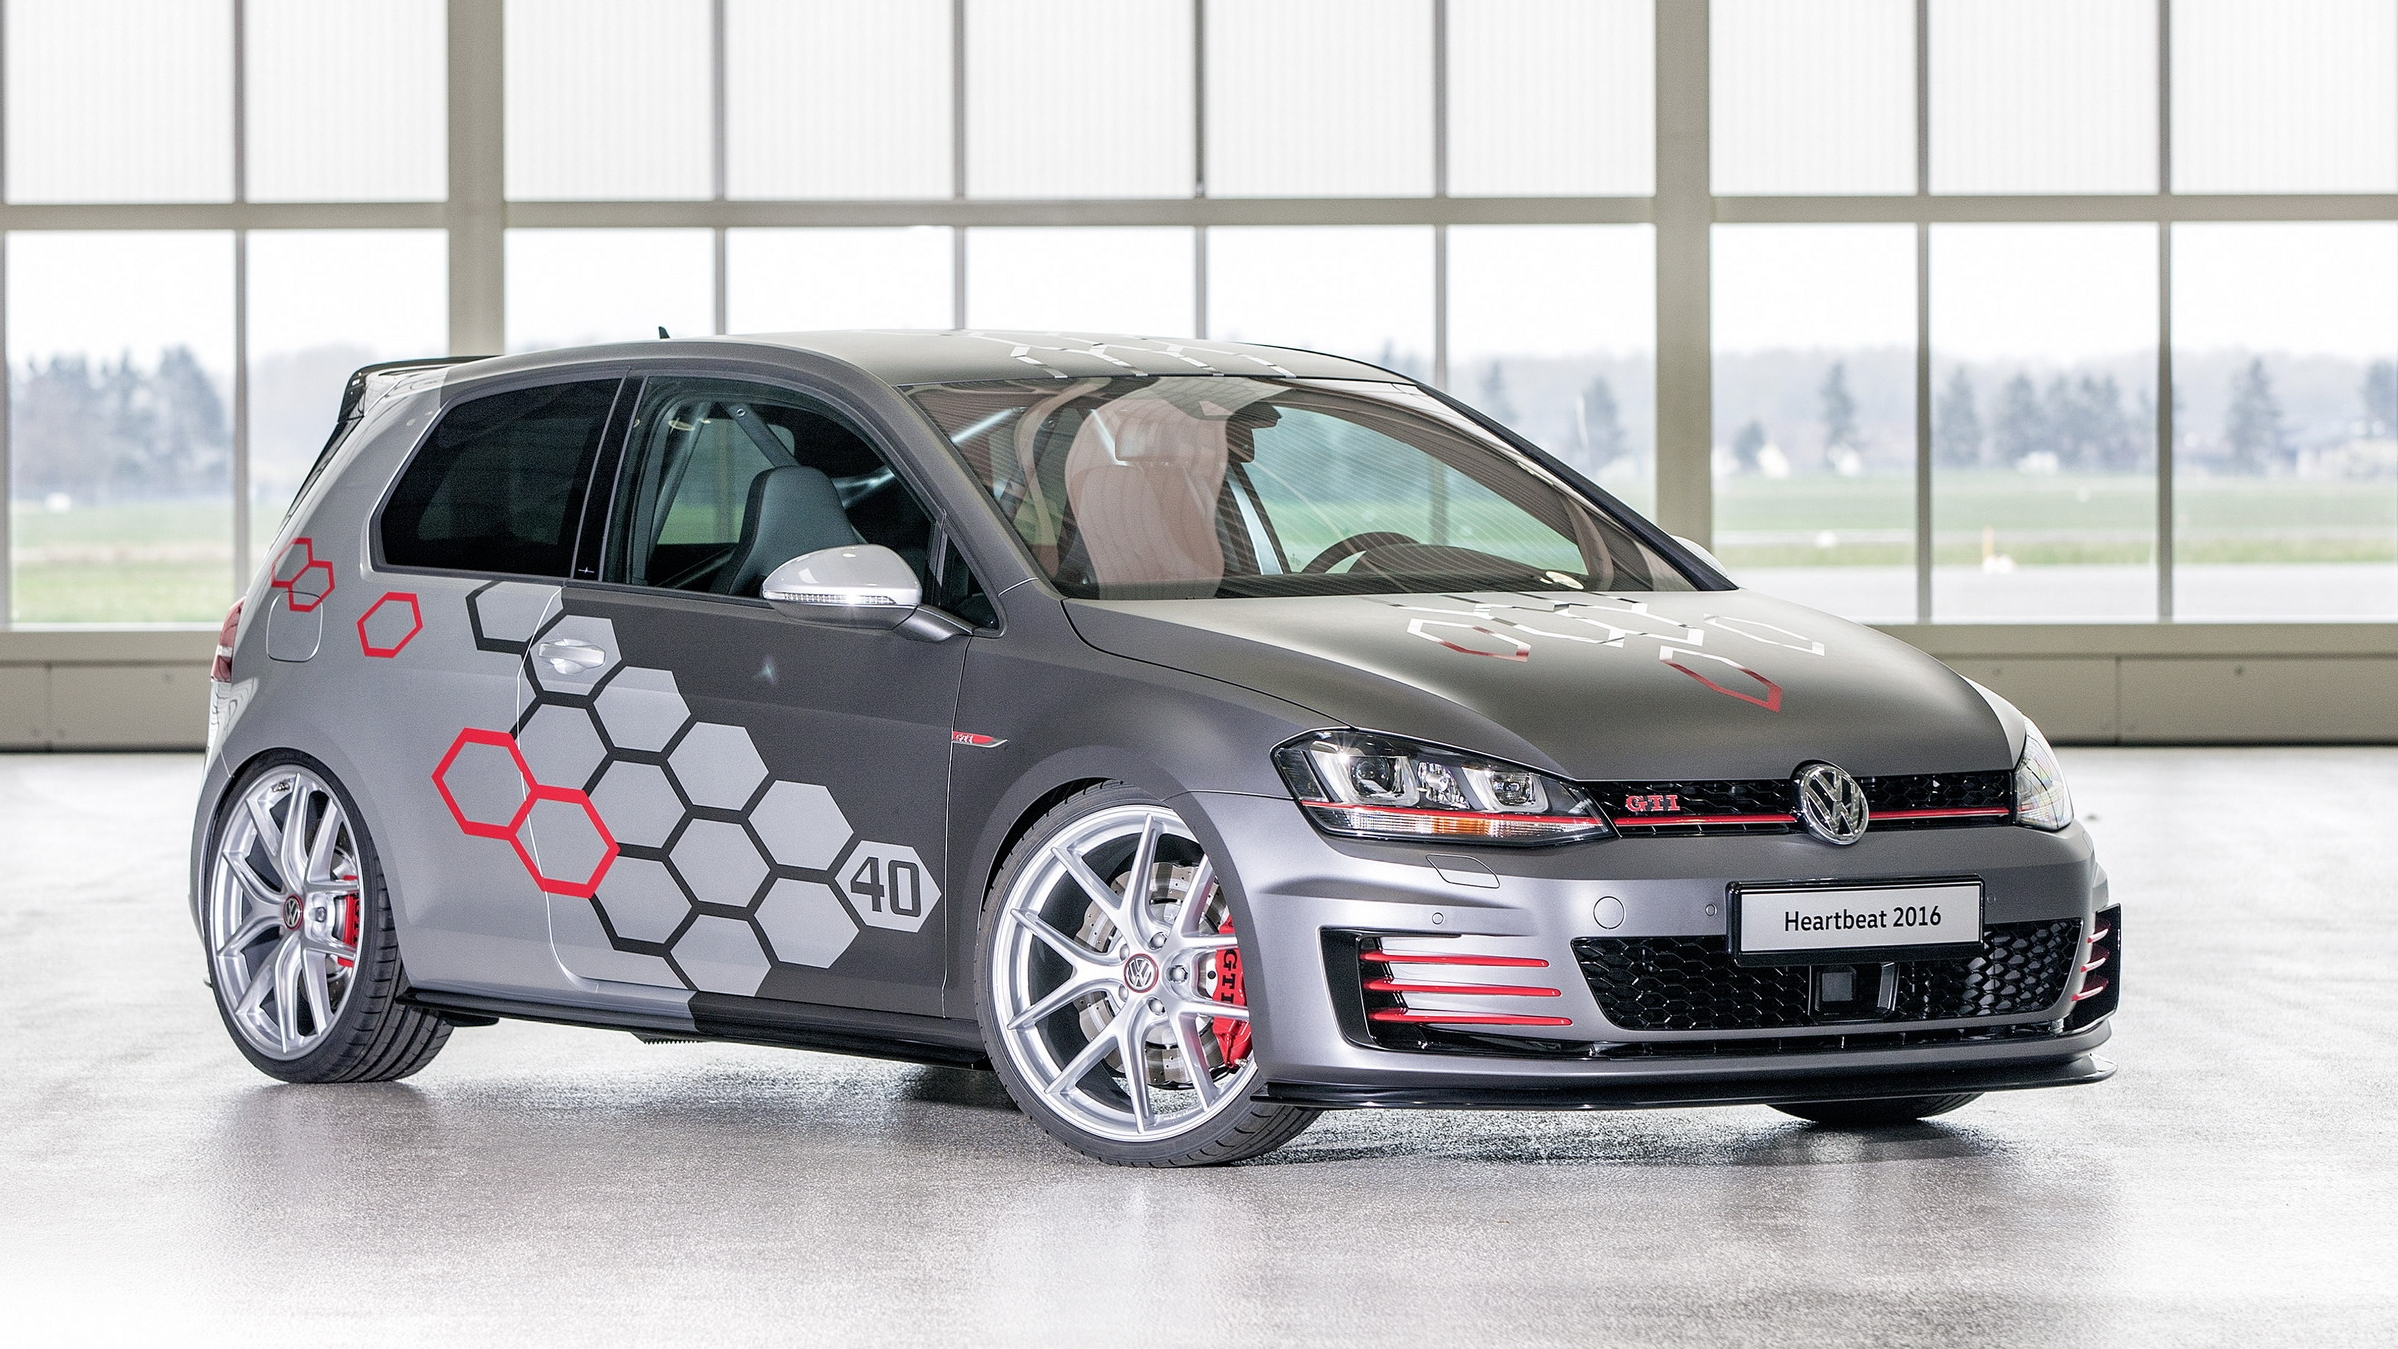 Genial 2016 Volkswagen Golf GTI Heartbeat Review   Top Speed. »